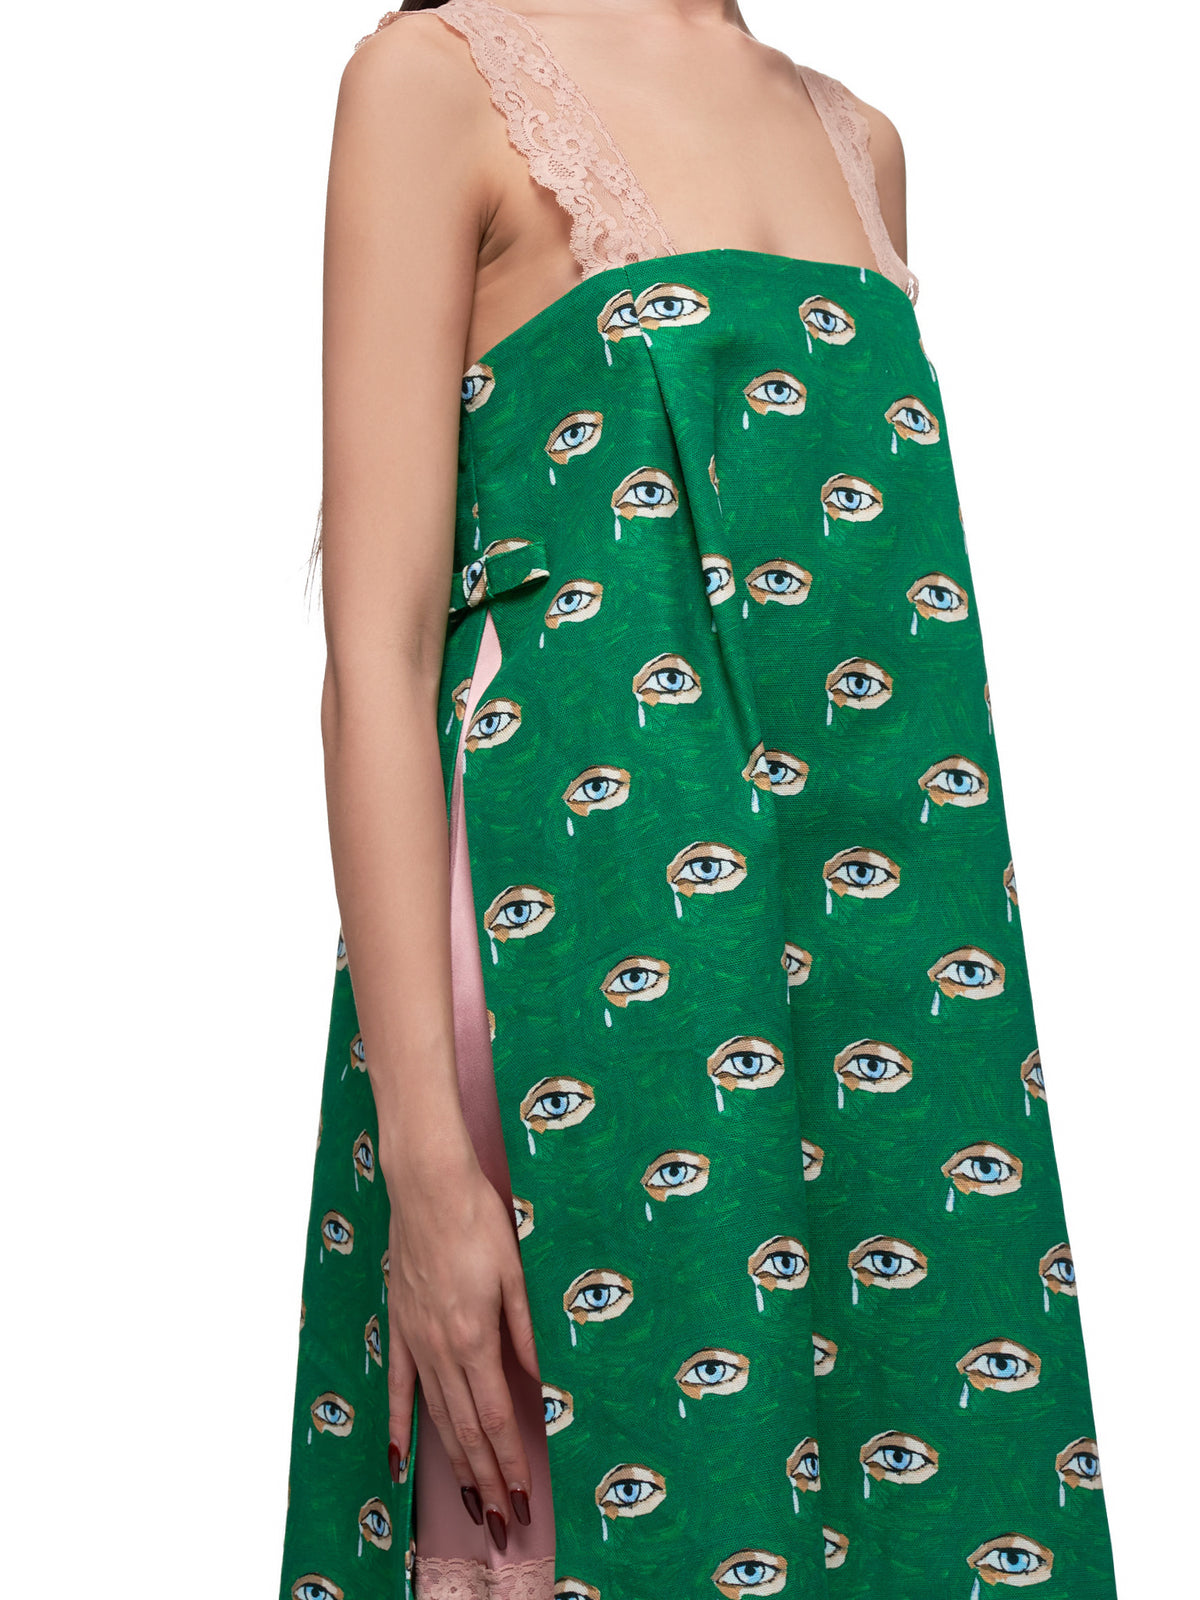 Yvonne Dress (YVONNE-GREEN-WITH-EYES)